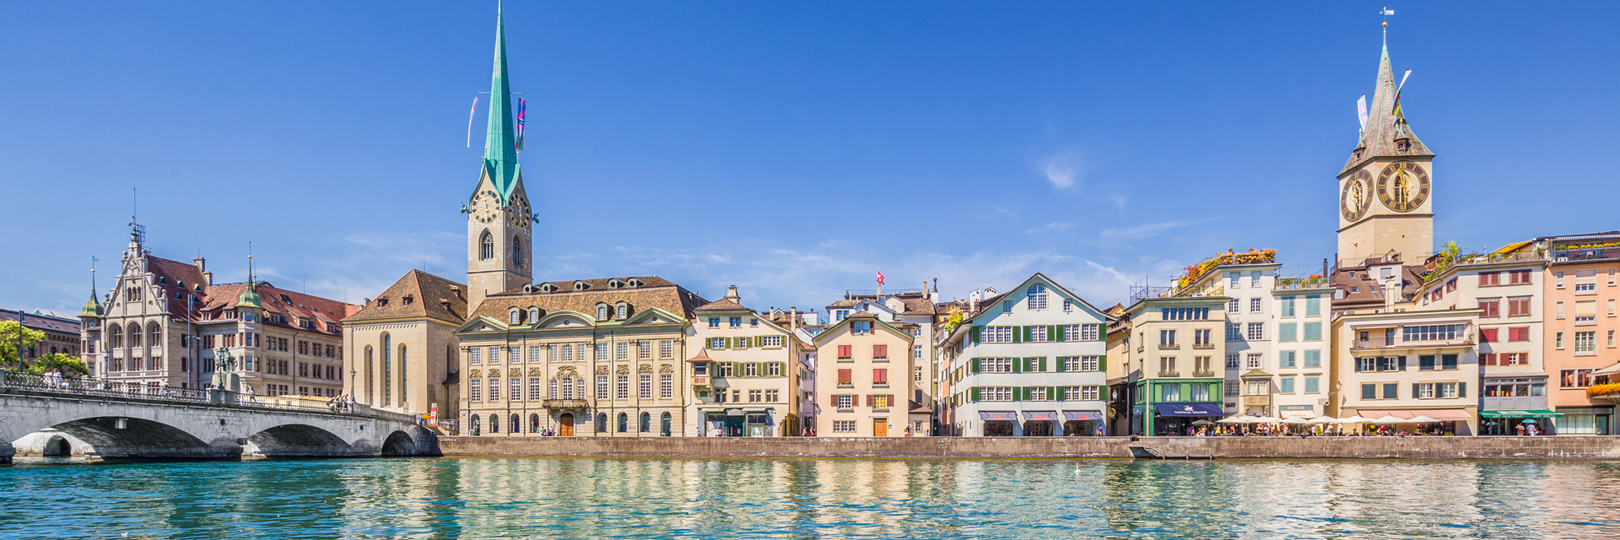 Enjoy a week in Zurich - The fairy tale city